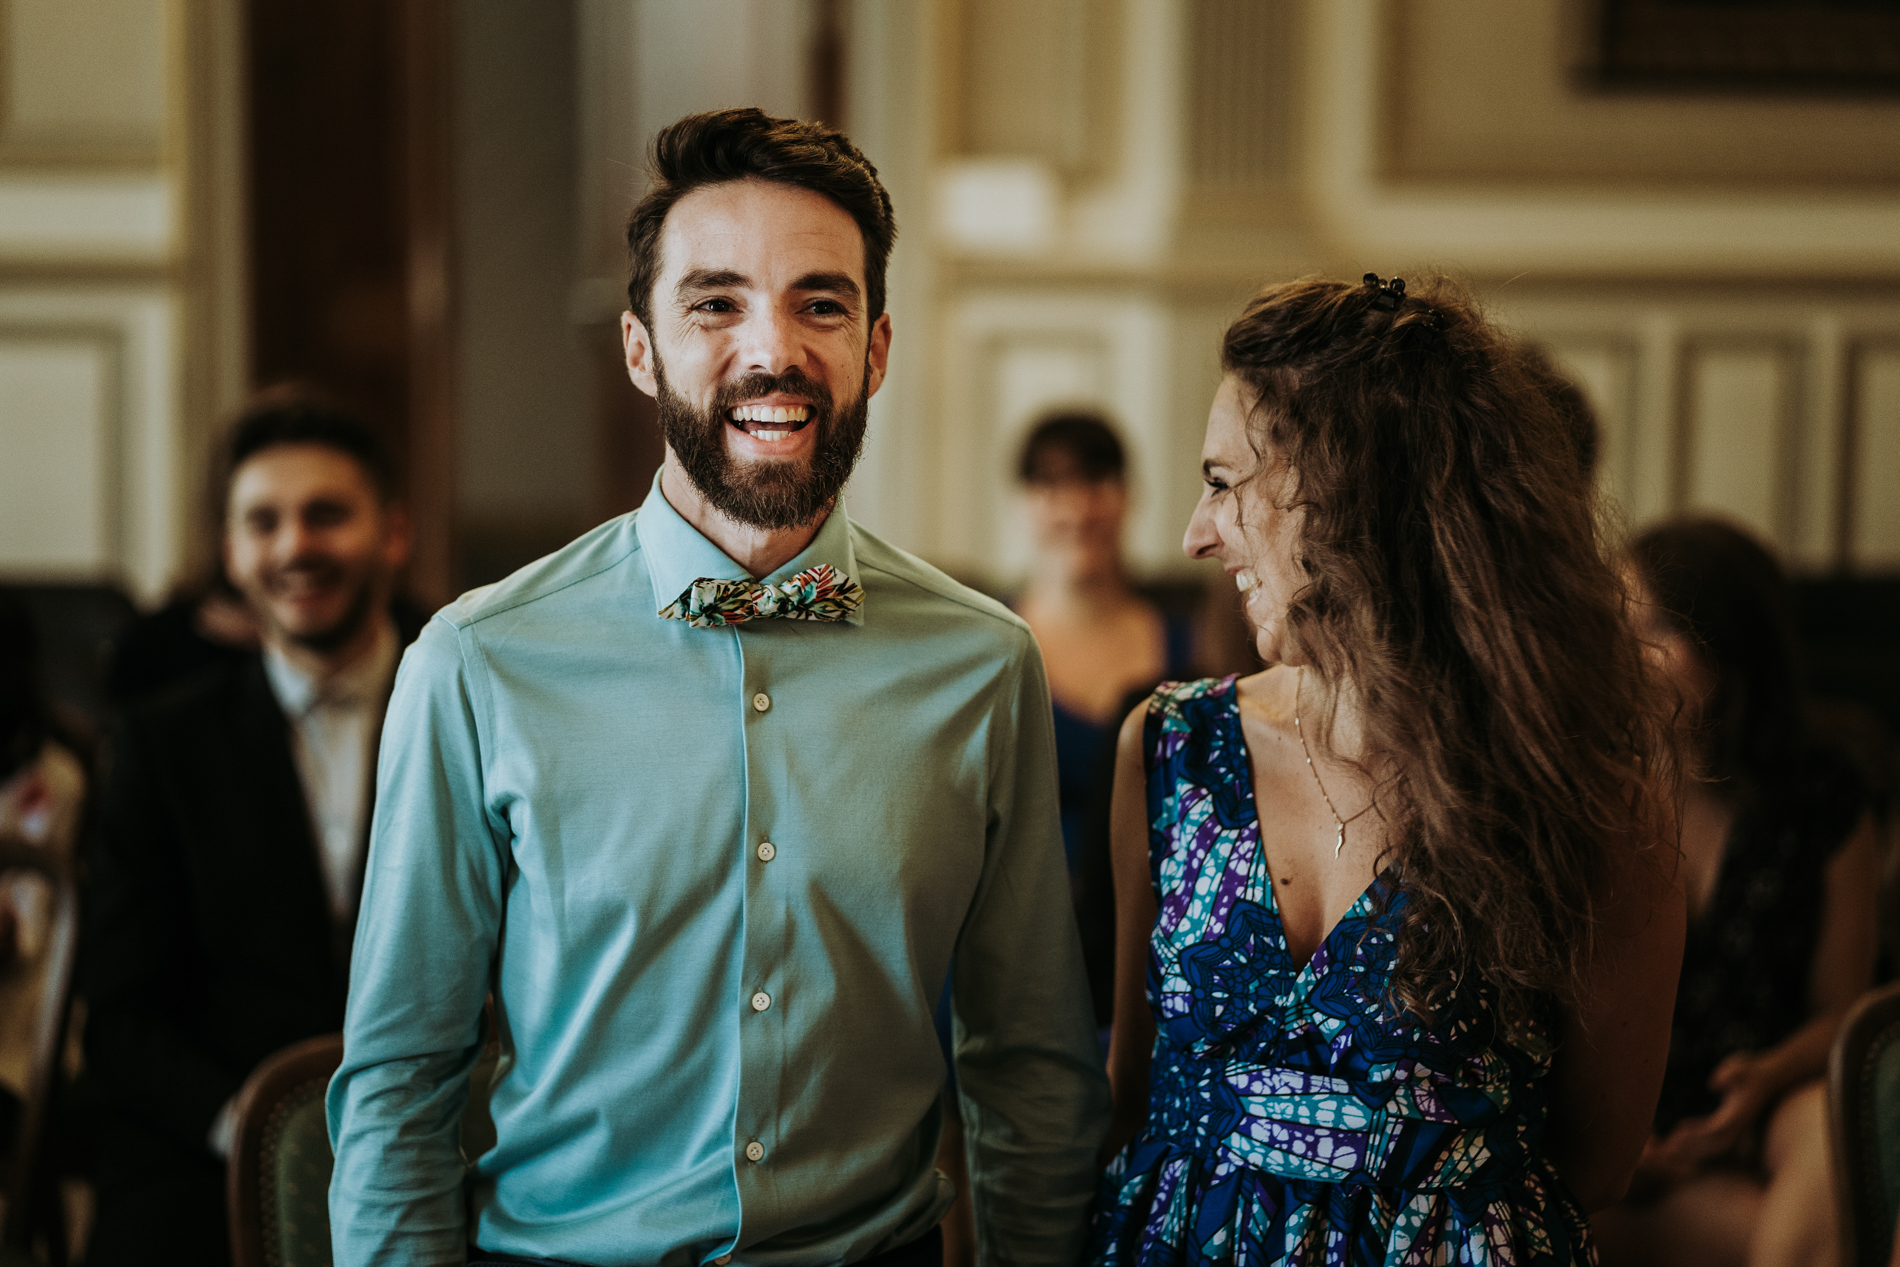 French Wedding Ceremony Photo | For this unconventional and joyous couple, their civil ceremony was full of good humor